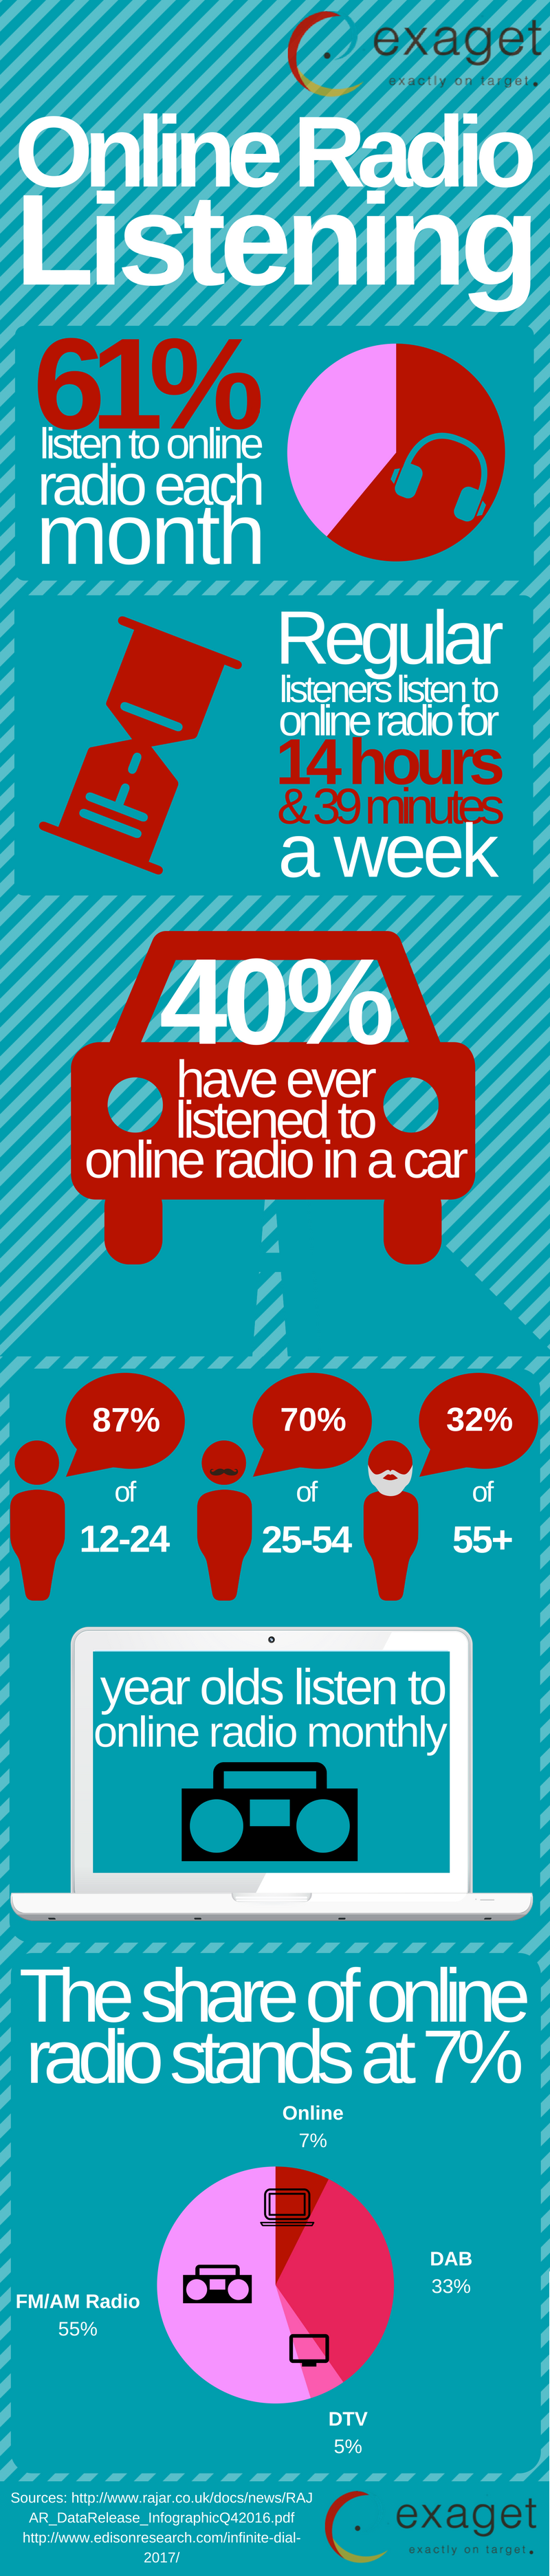 online radio listening infographic